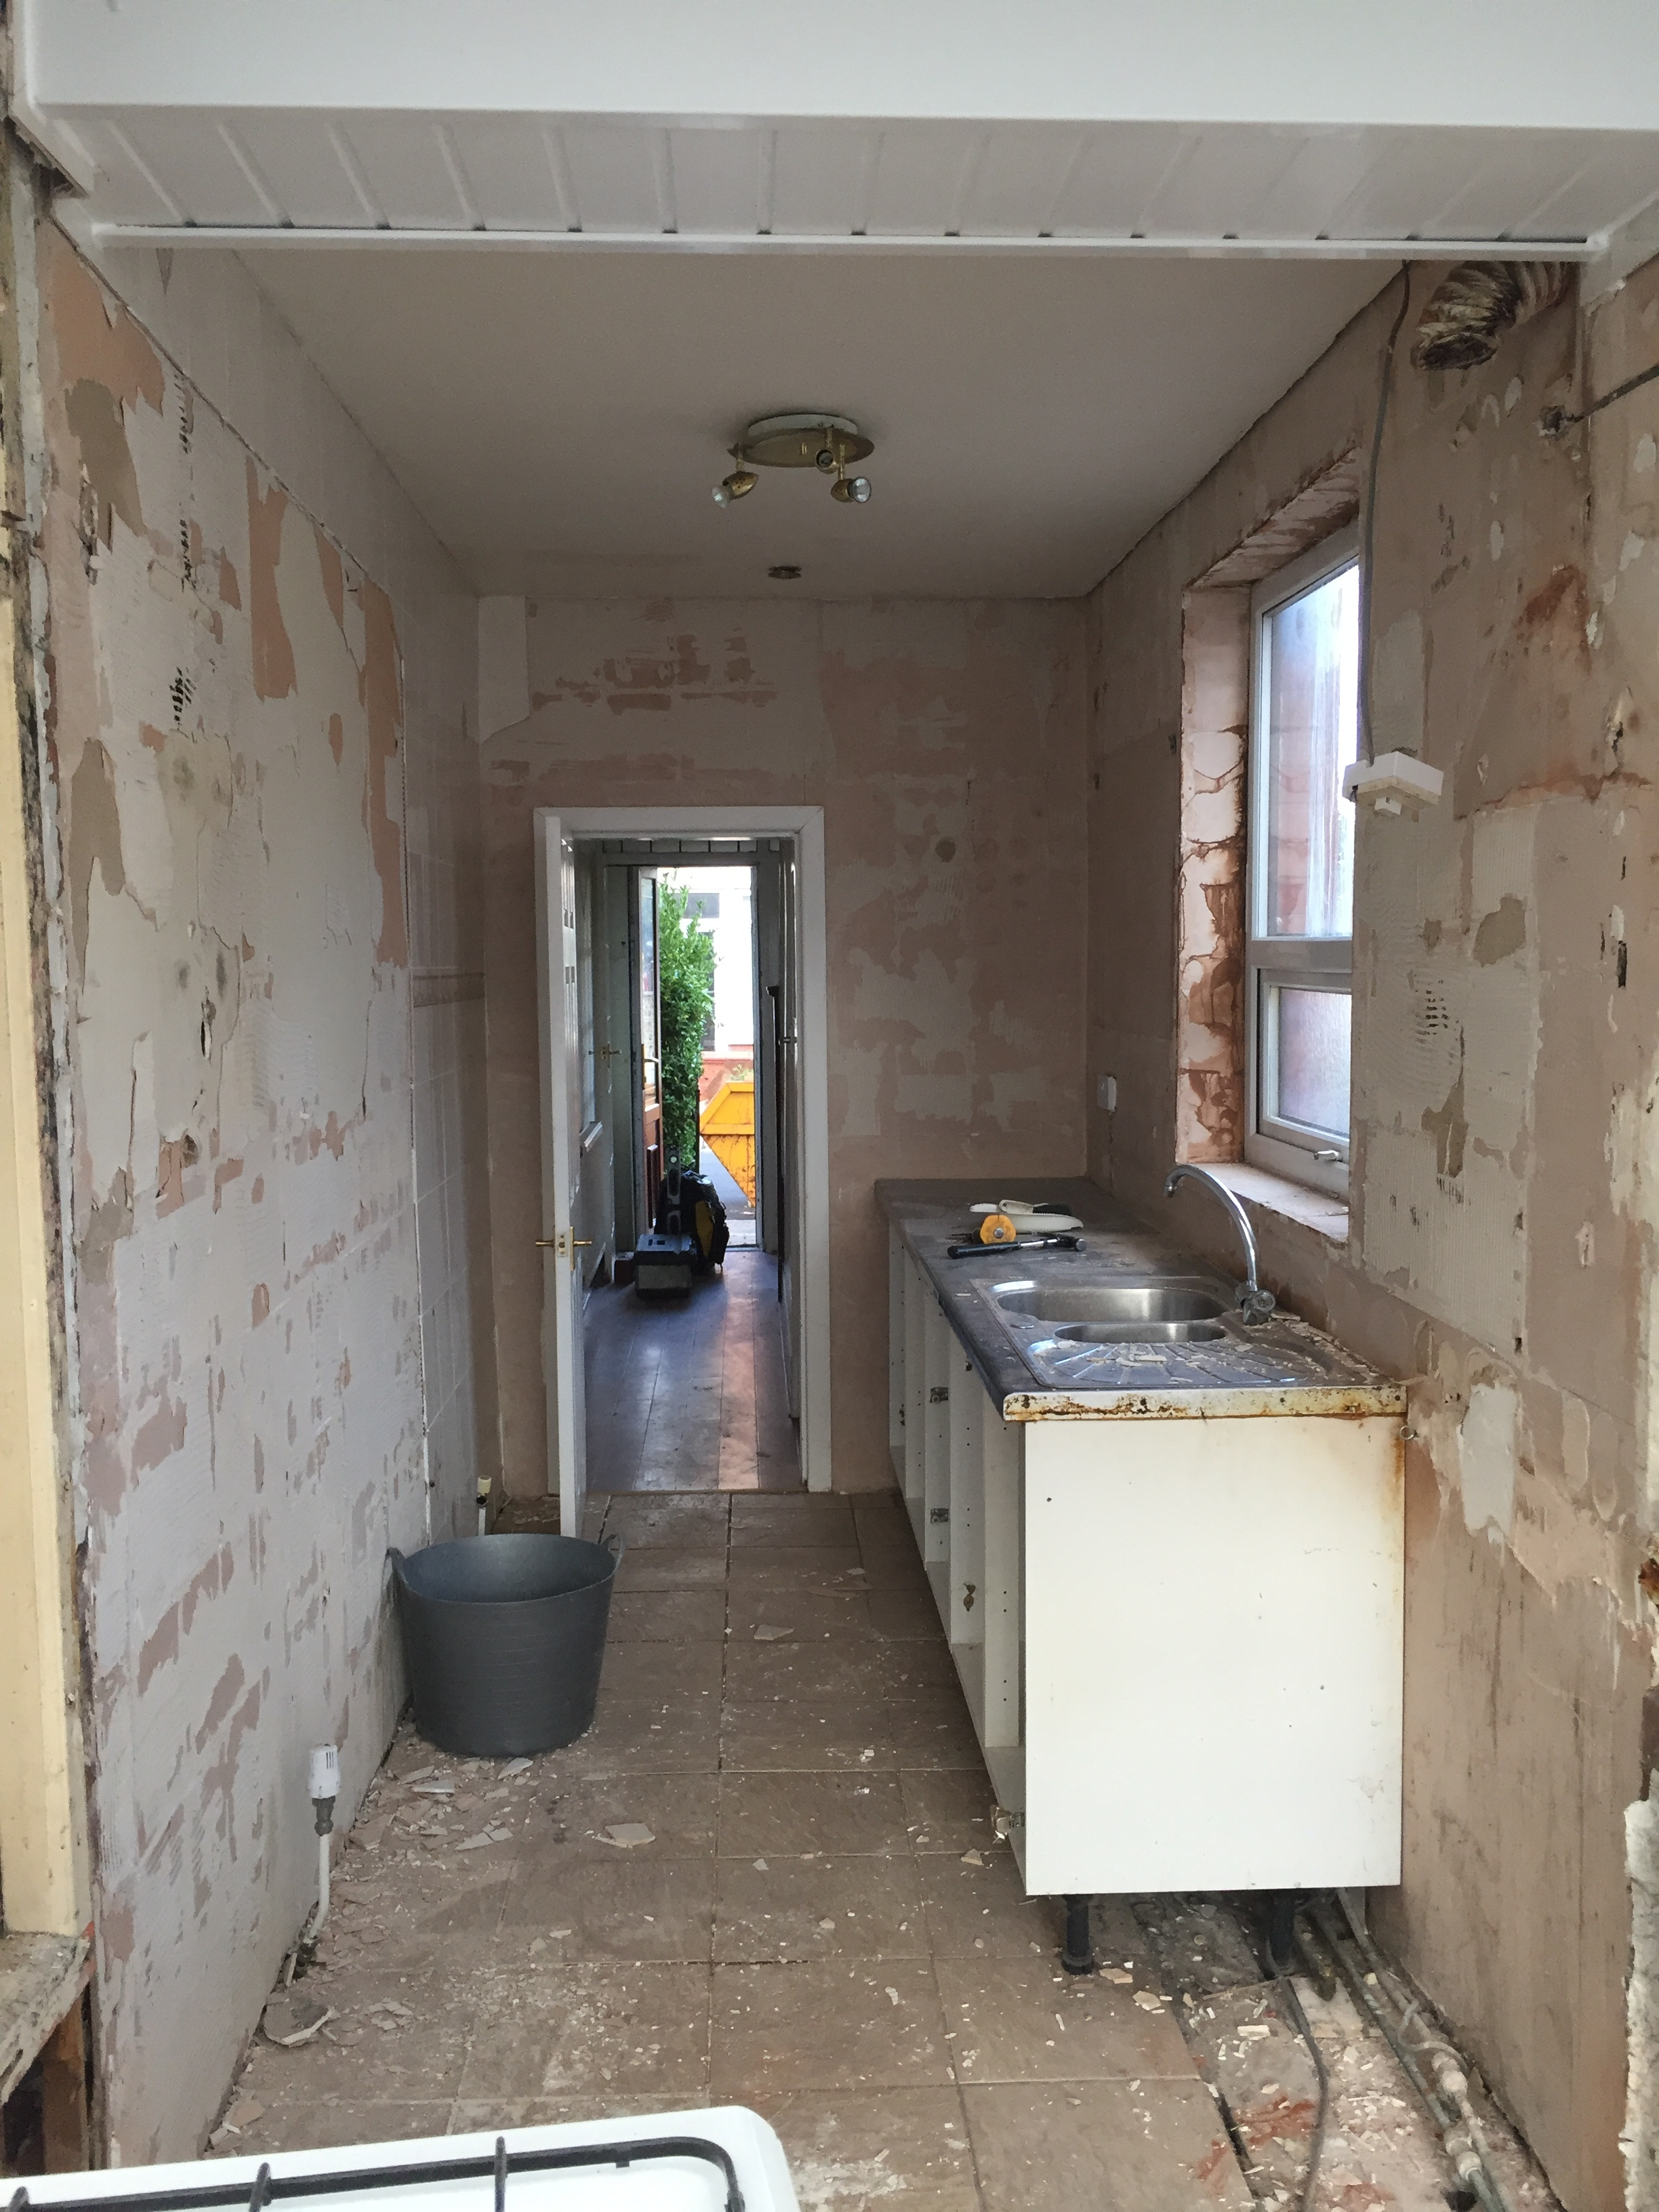 Tiles stripped, units removed